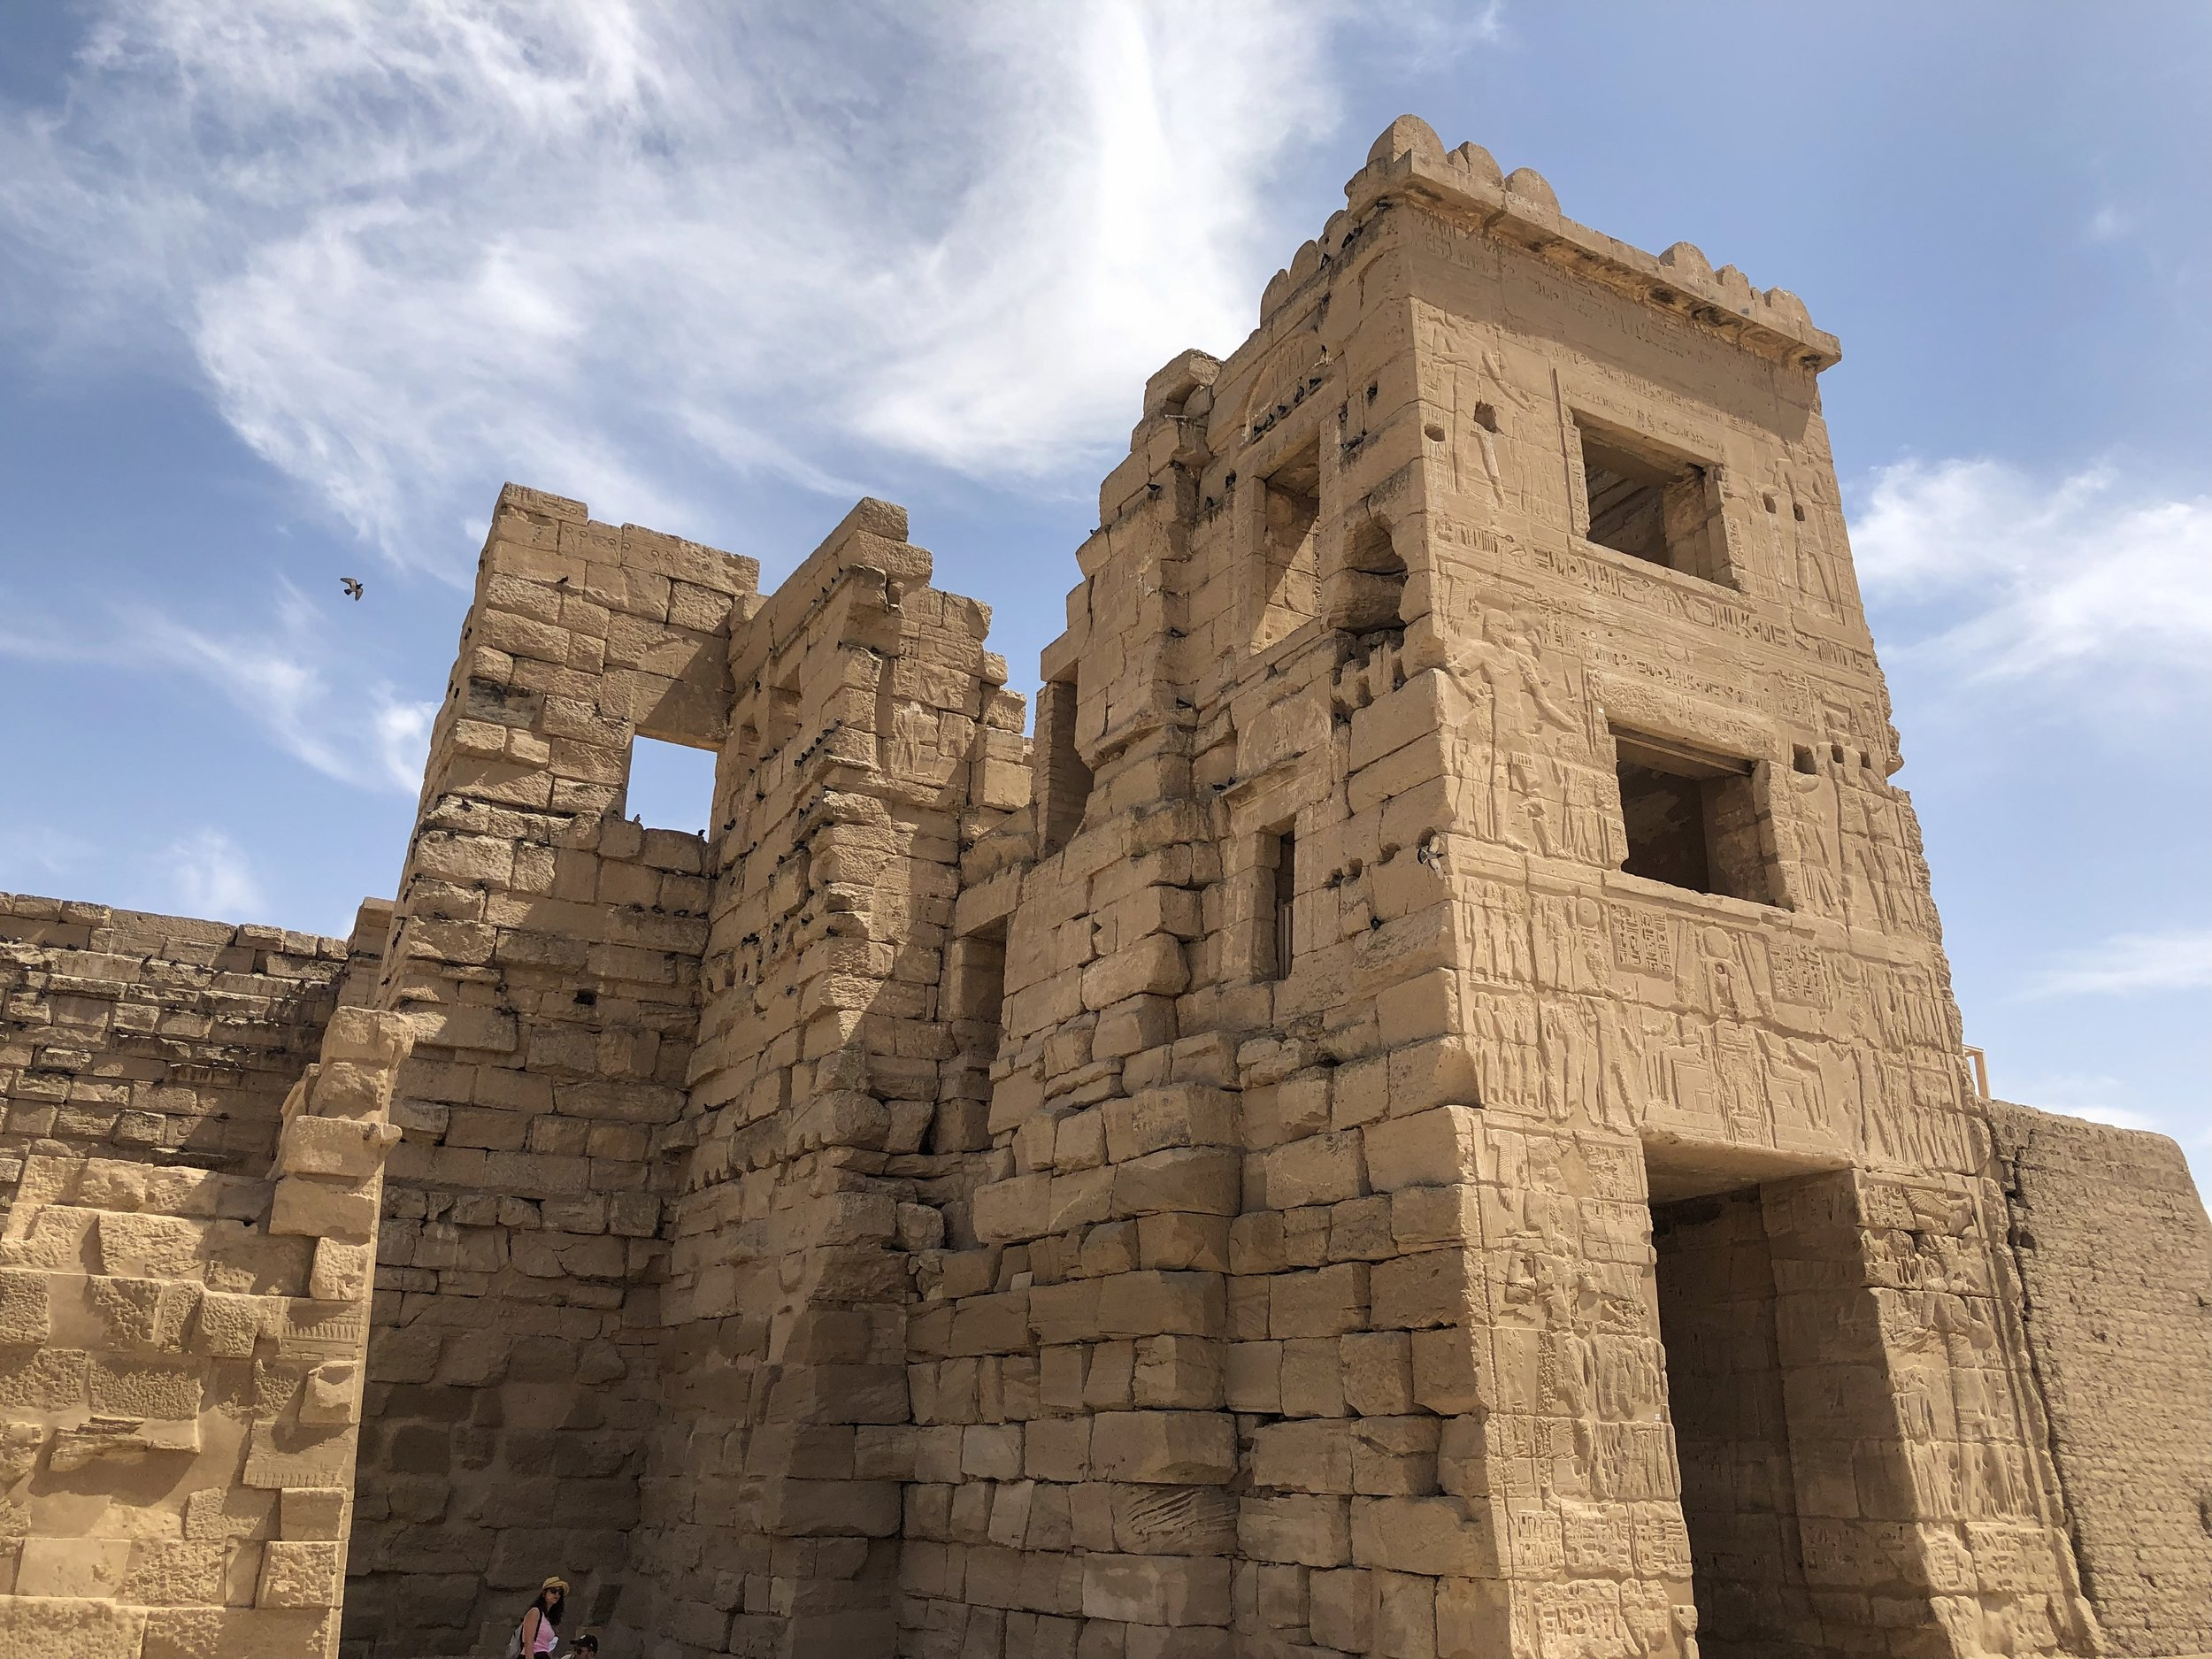 It was in these rooms at the top of the structure where Ramesses III hung out with his many wives — and where he met his demise